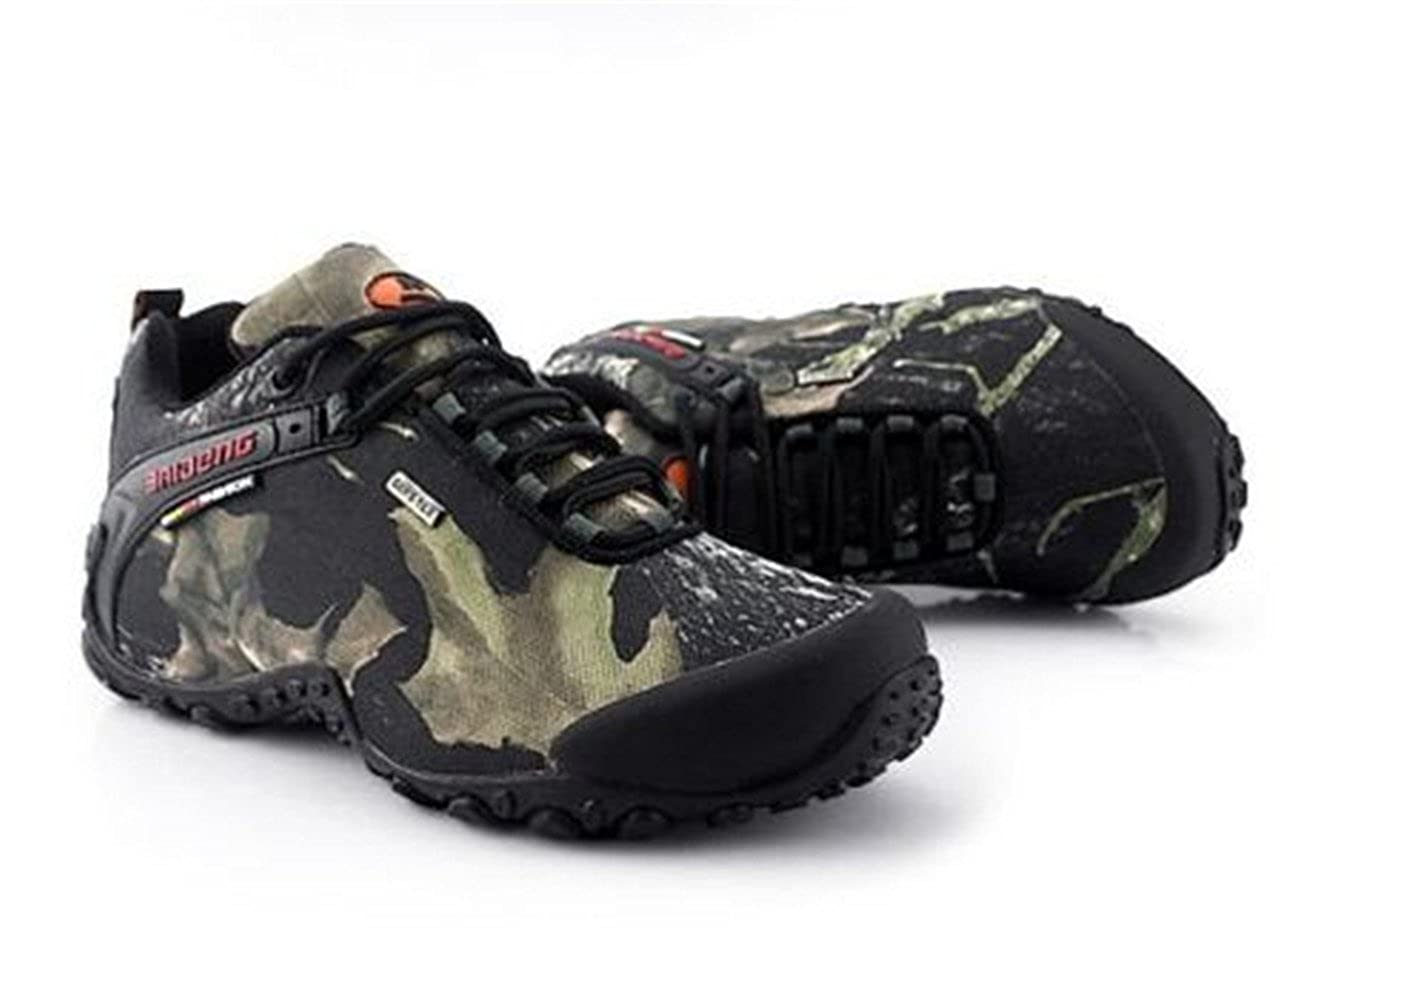 Benrisstore Mens Breathable Camouflage Sneakers Hiking Outdoor Climb Trekking Shoes